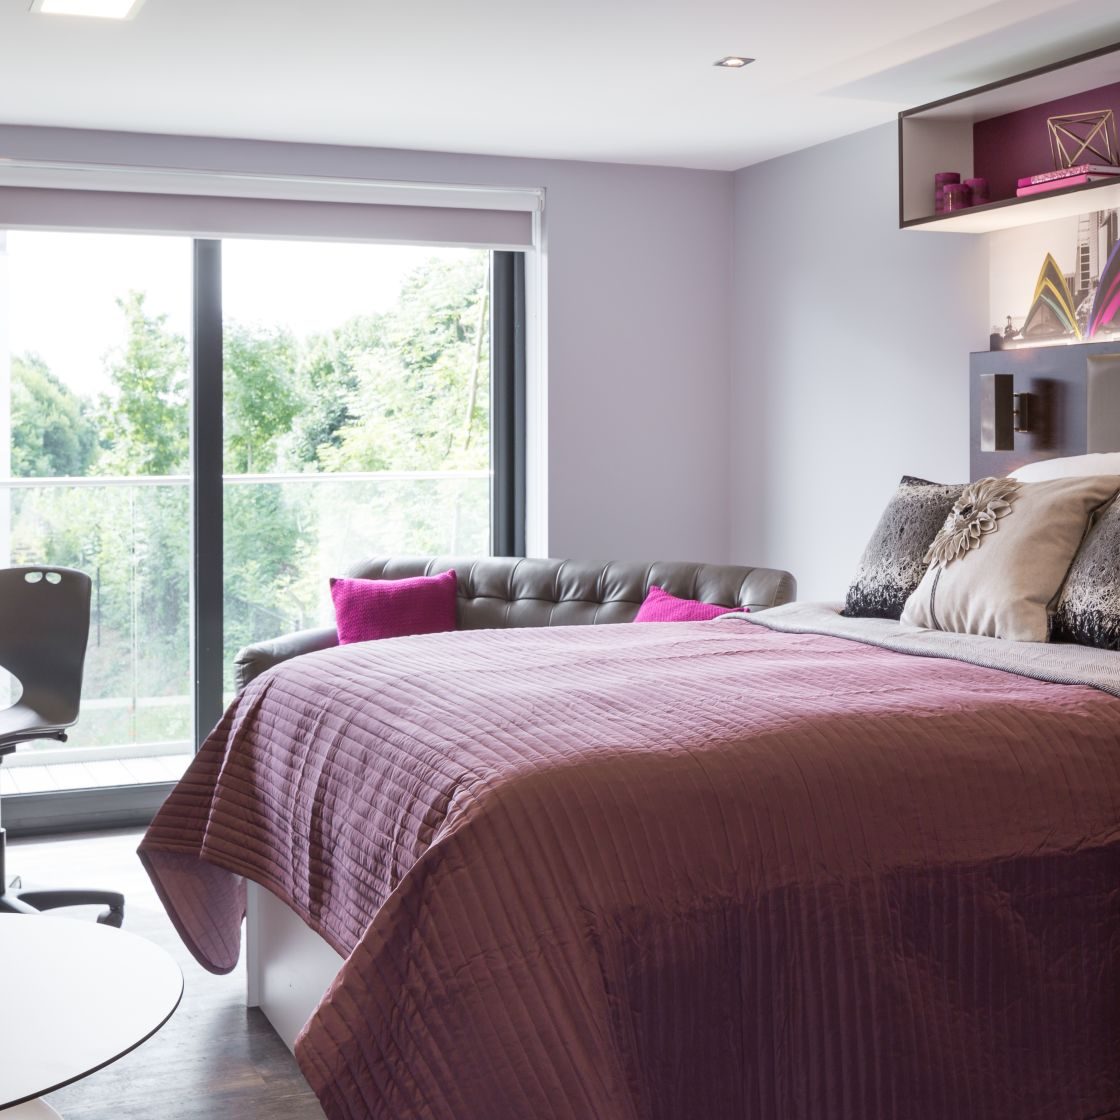 Elegance Student Apartment in Leeds with King Size Bed and Sofa. IconInc, The Glassworks.